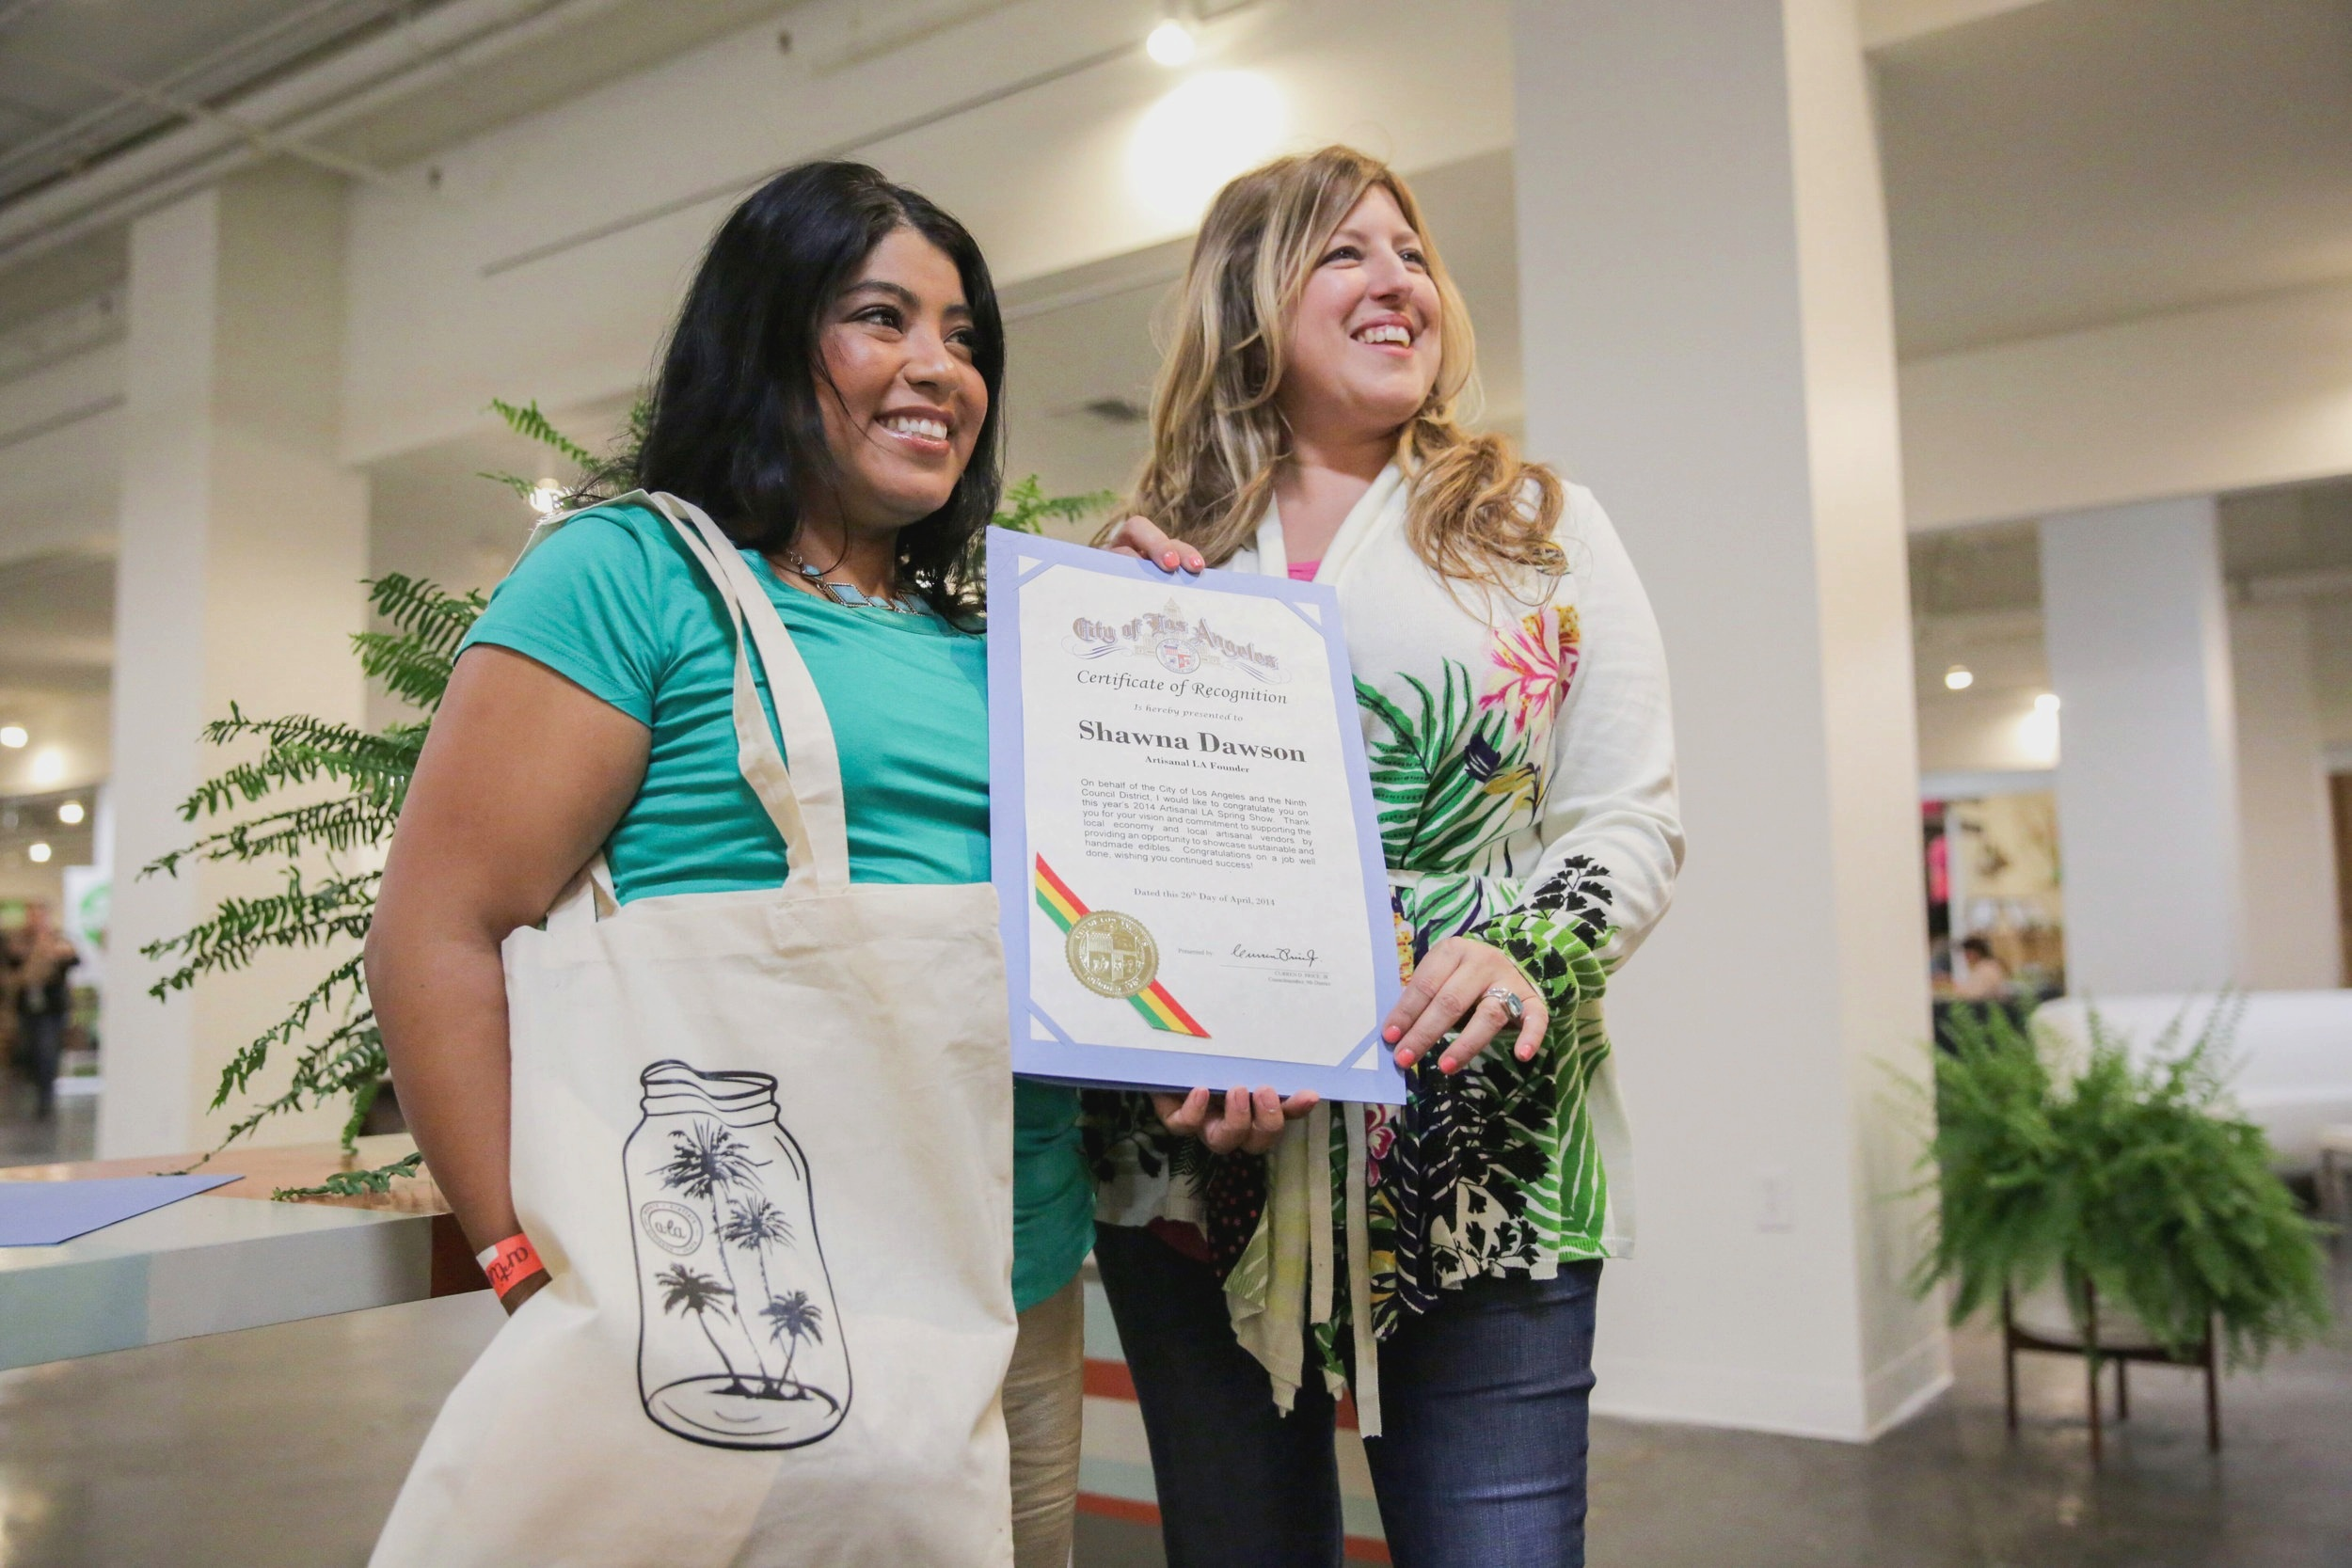 Founder Shawna Dawson (right) holding City Recognition Award.